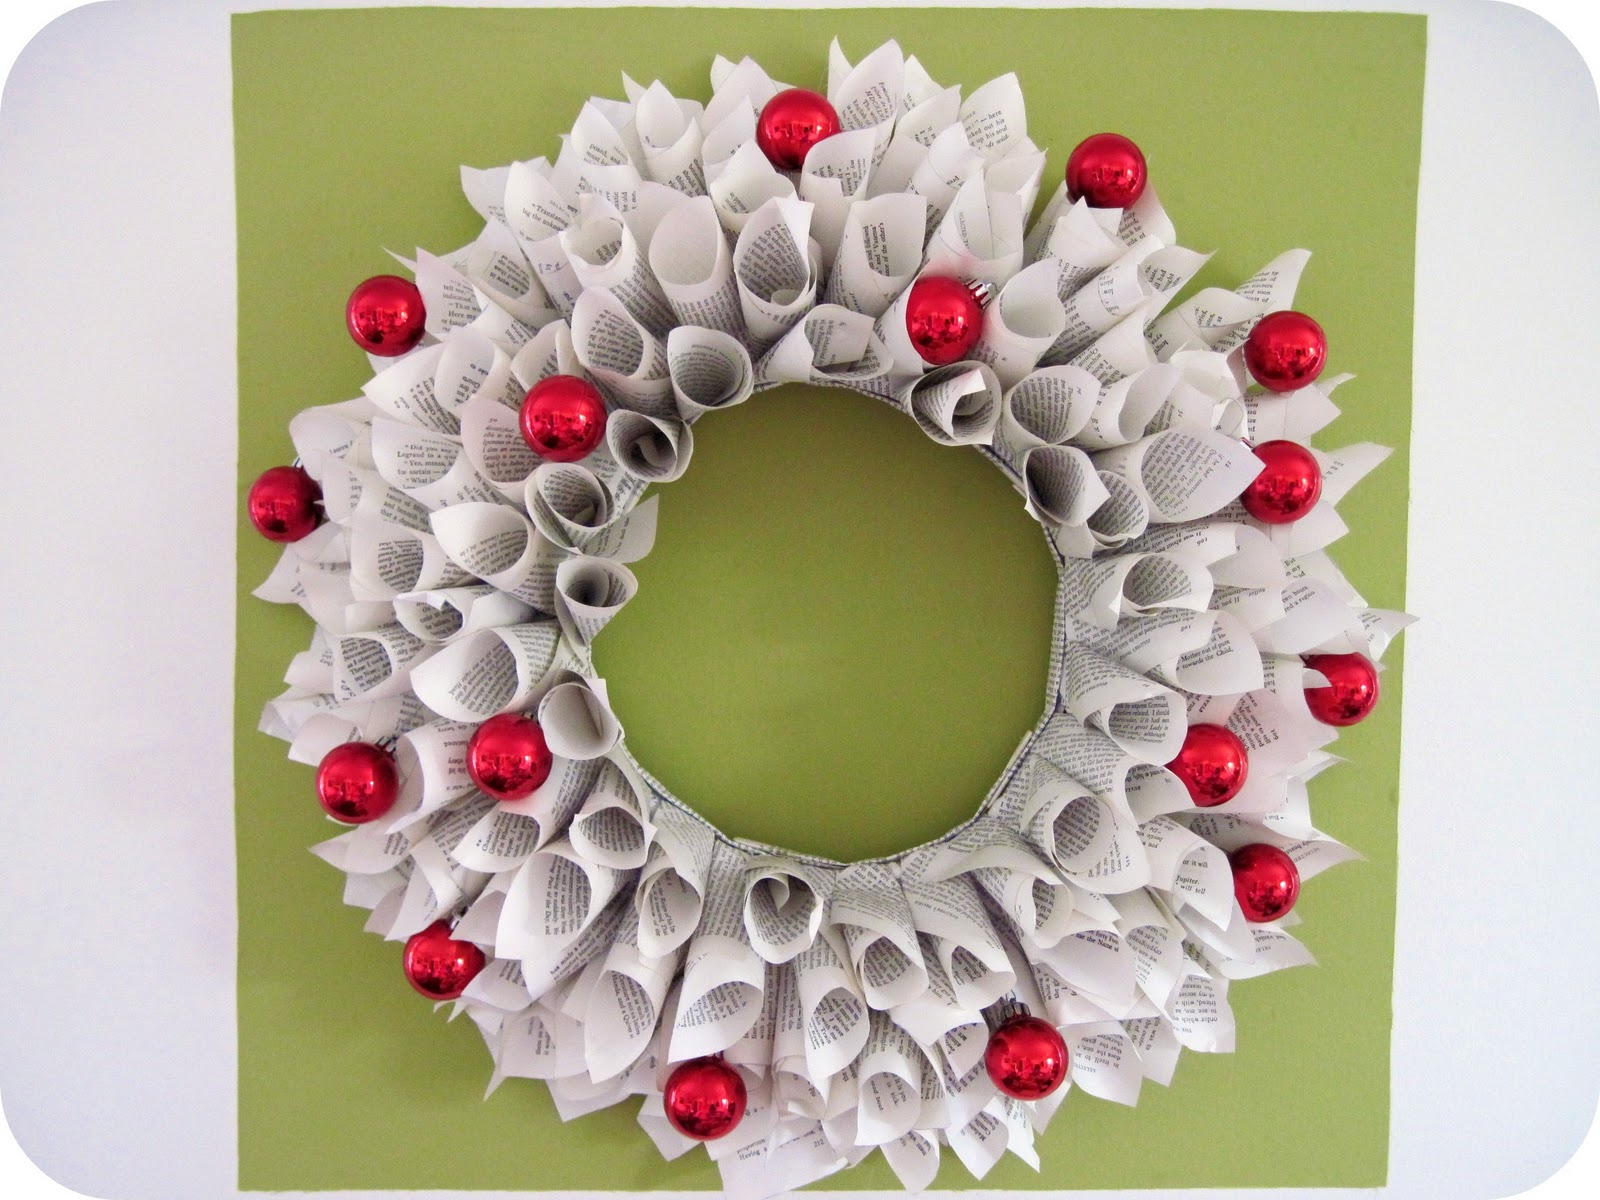 Homemade by jill holiday cheer book wreath Christmas wreaths to make